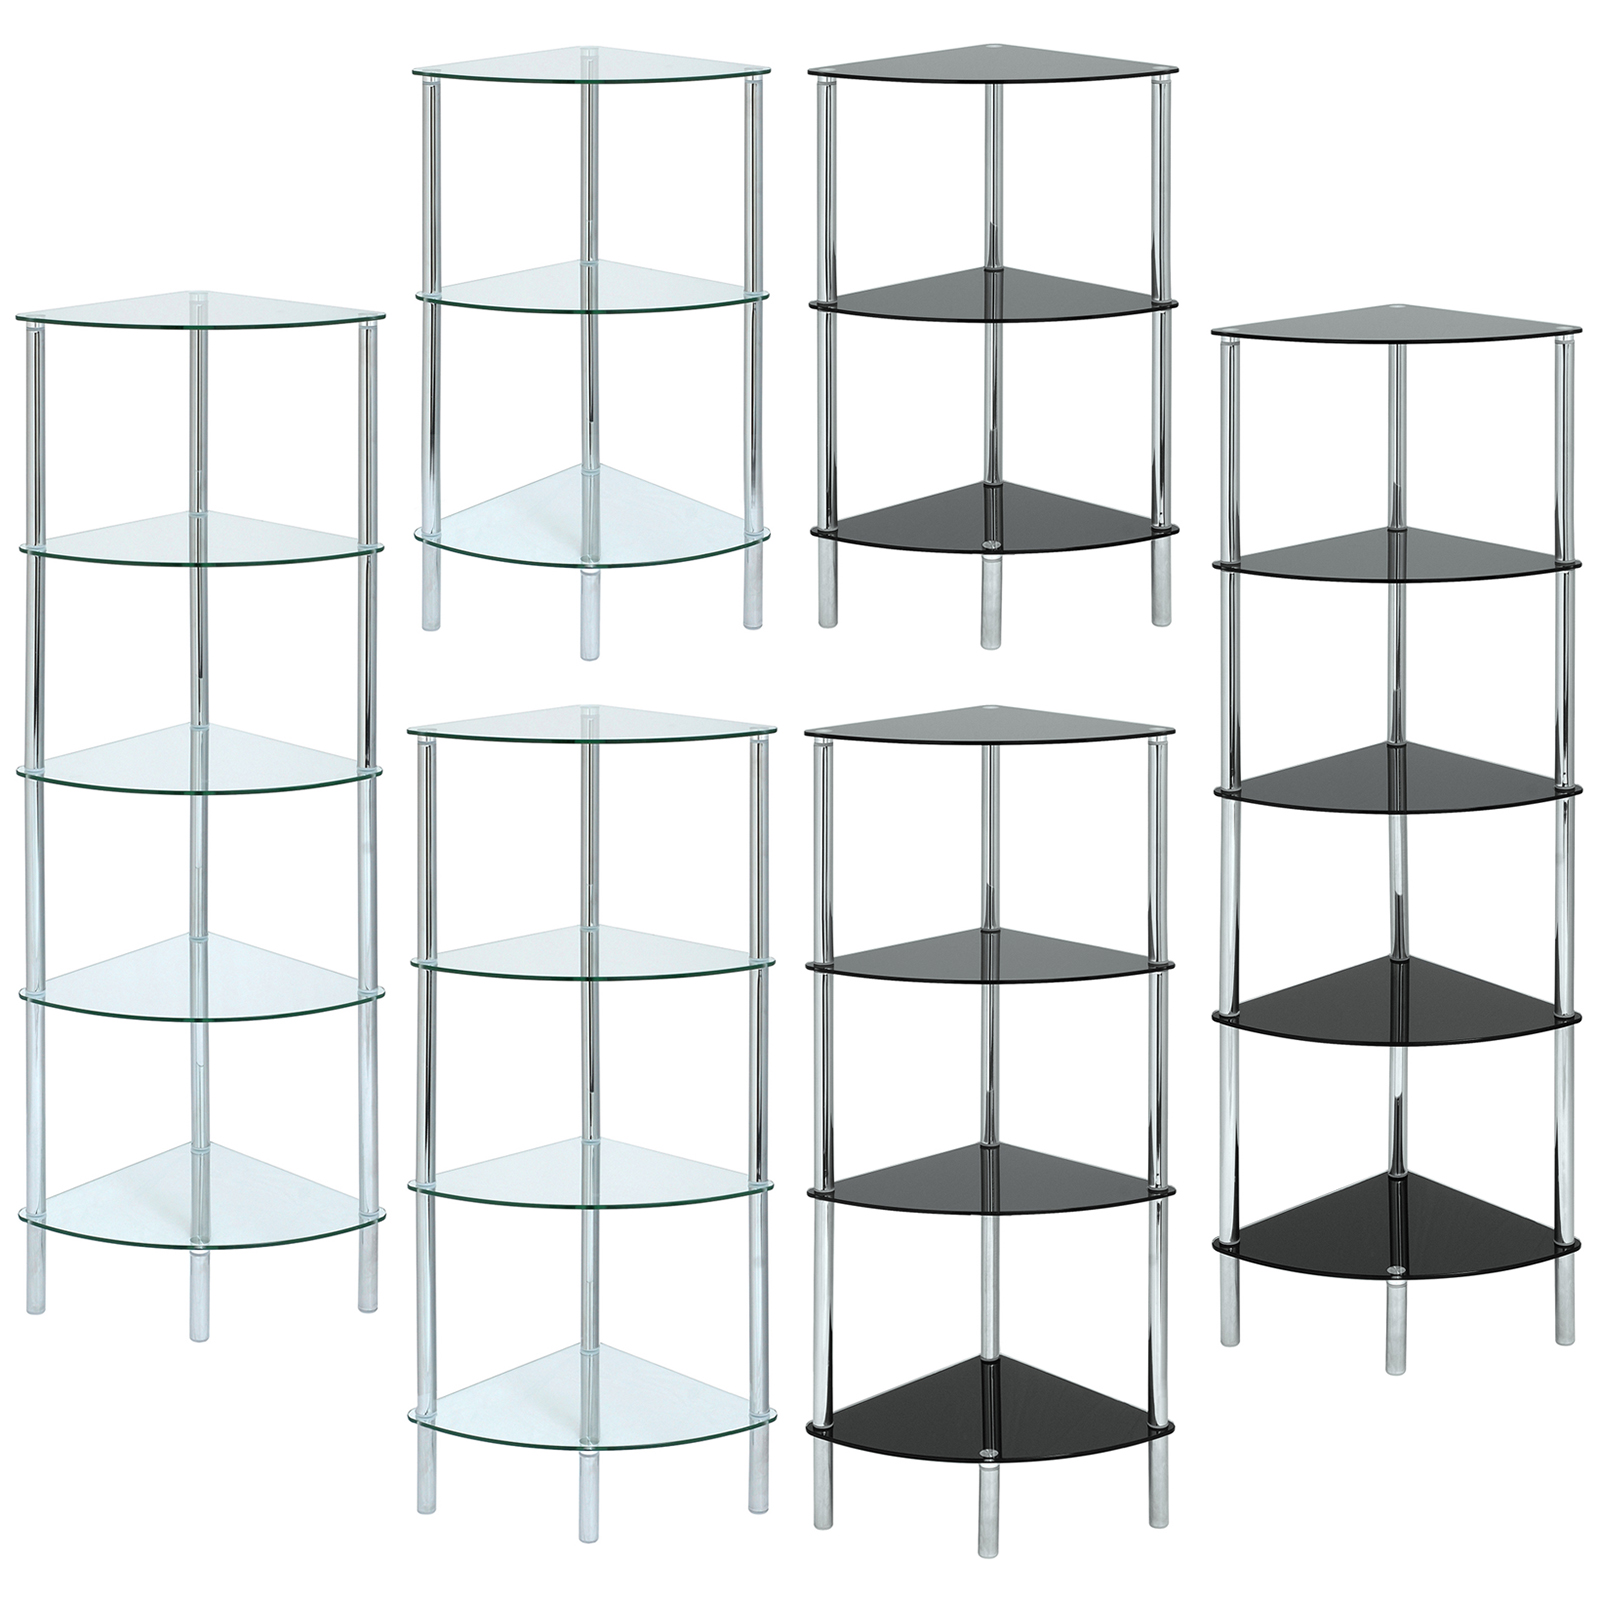 Glass corner shelf unit display bathroom hall end lamp - Bathroom glass corner shelves shower ...